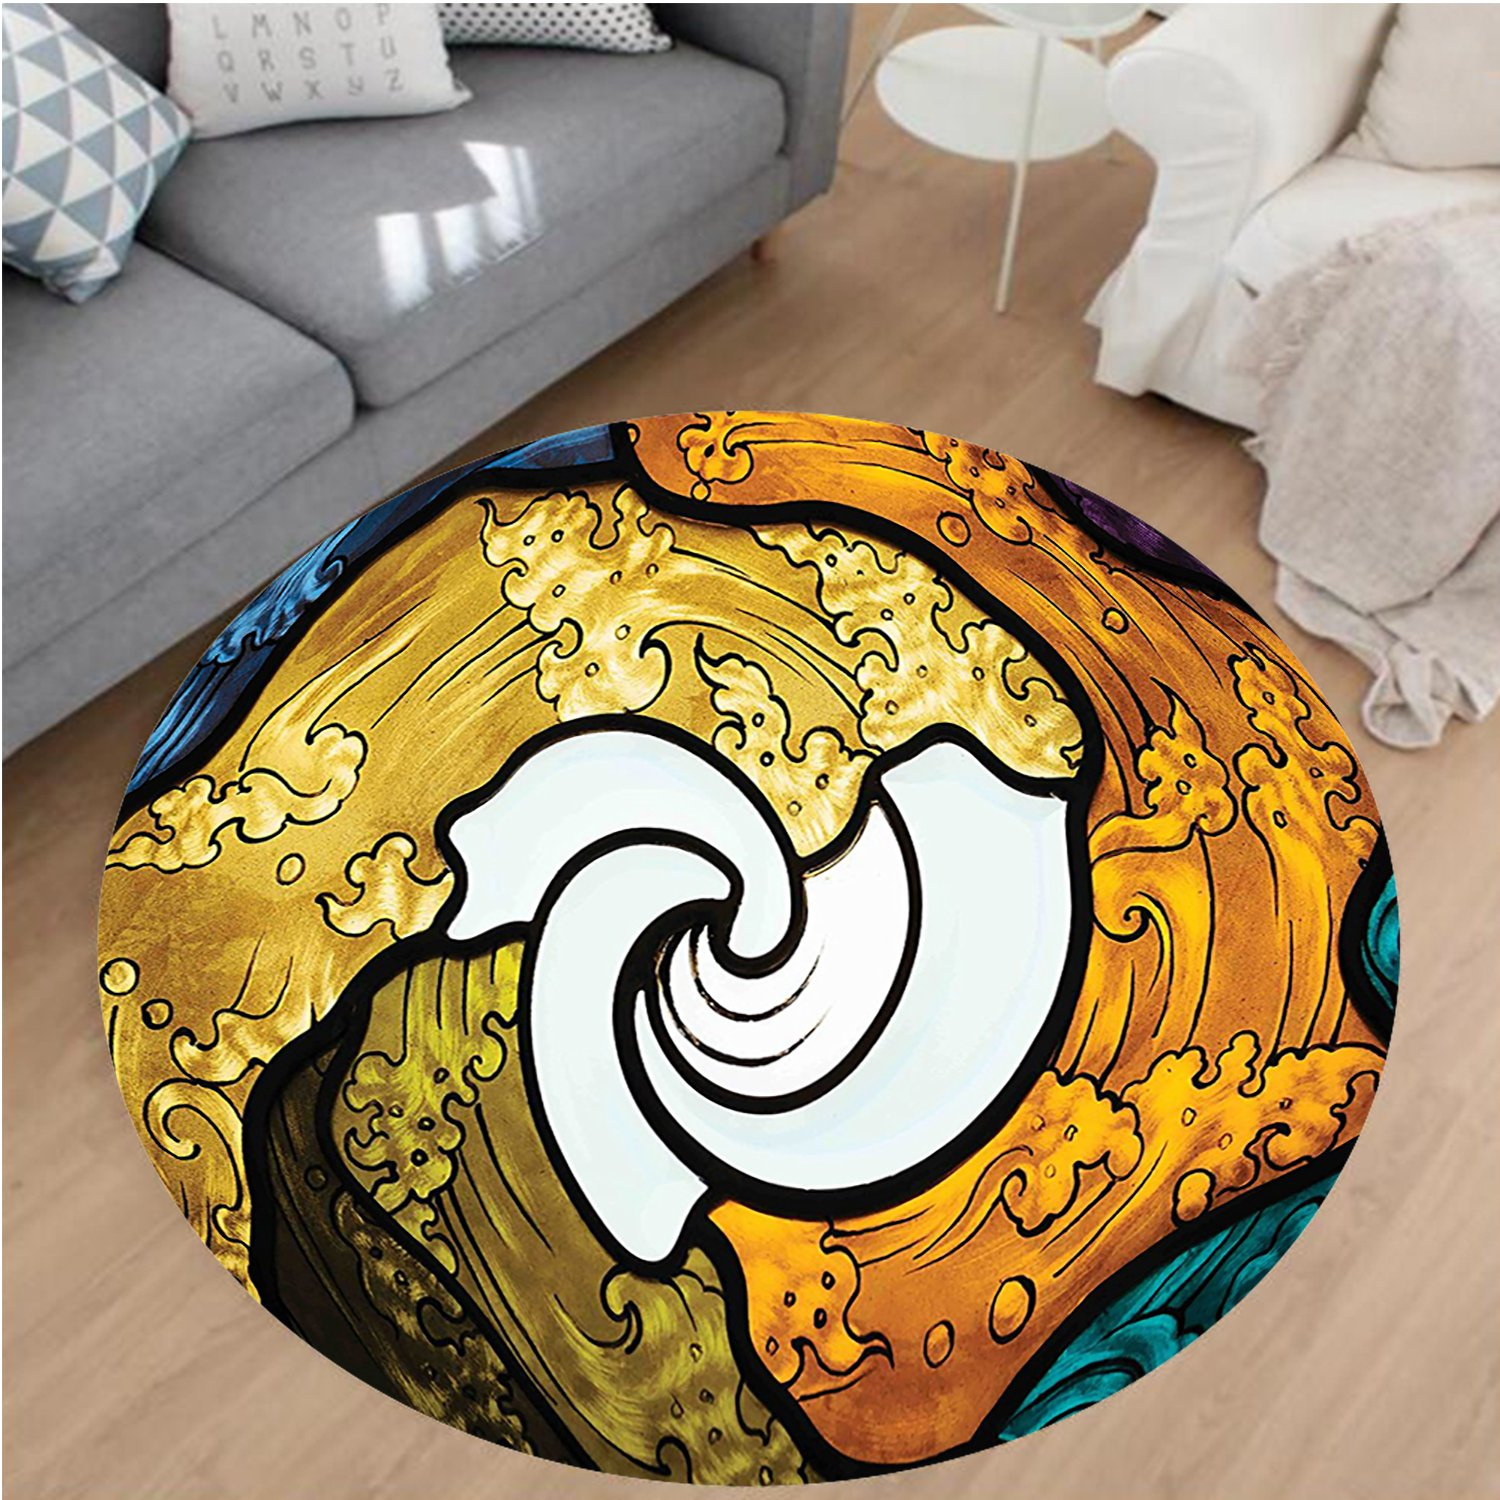 Nalahome Modern Flannel Microfiber Non-Slip Machine Washable Round Area Rug-Pop Art Style Funky Unusual Stained Glass Window Thai Art Pattern Traditional Image Multi area rugs Home Decor-Round 67'' by Nalahome